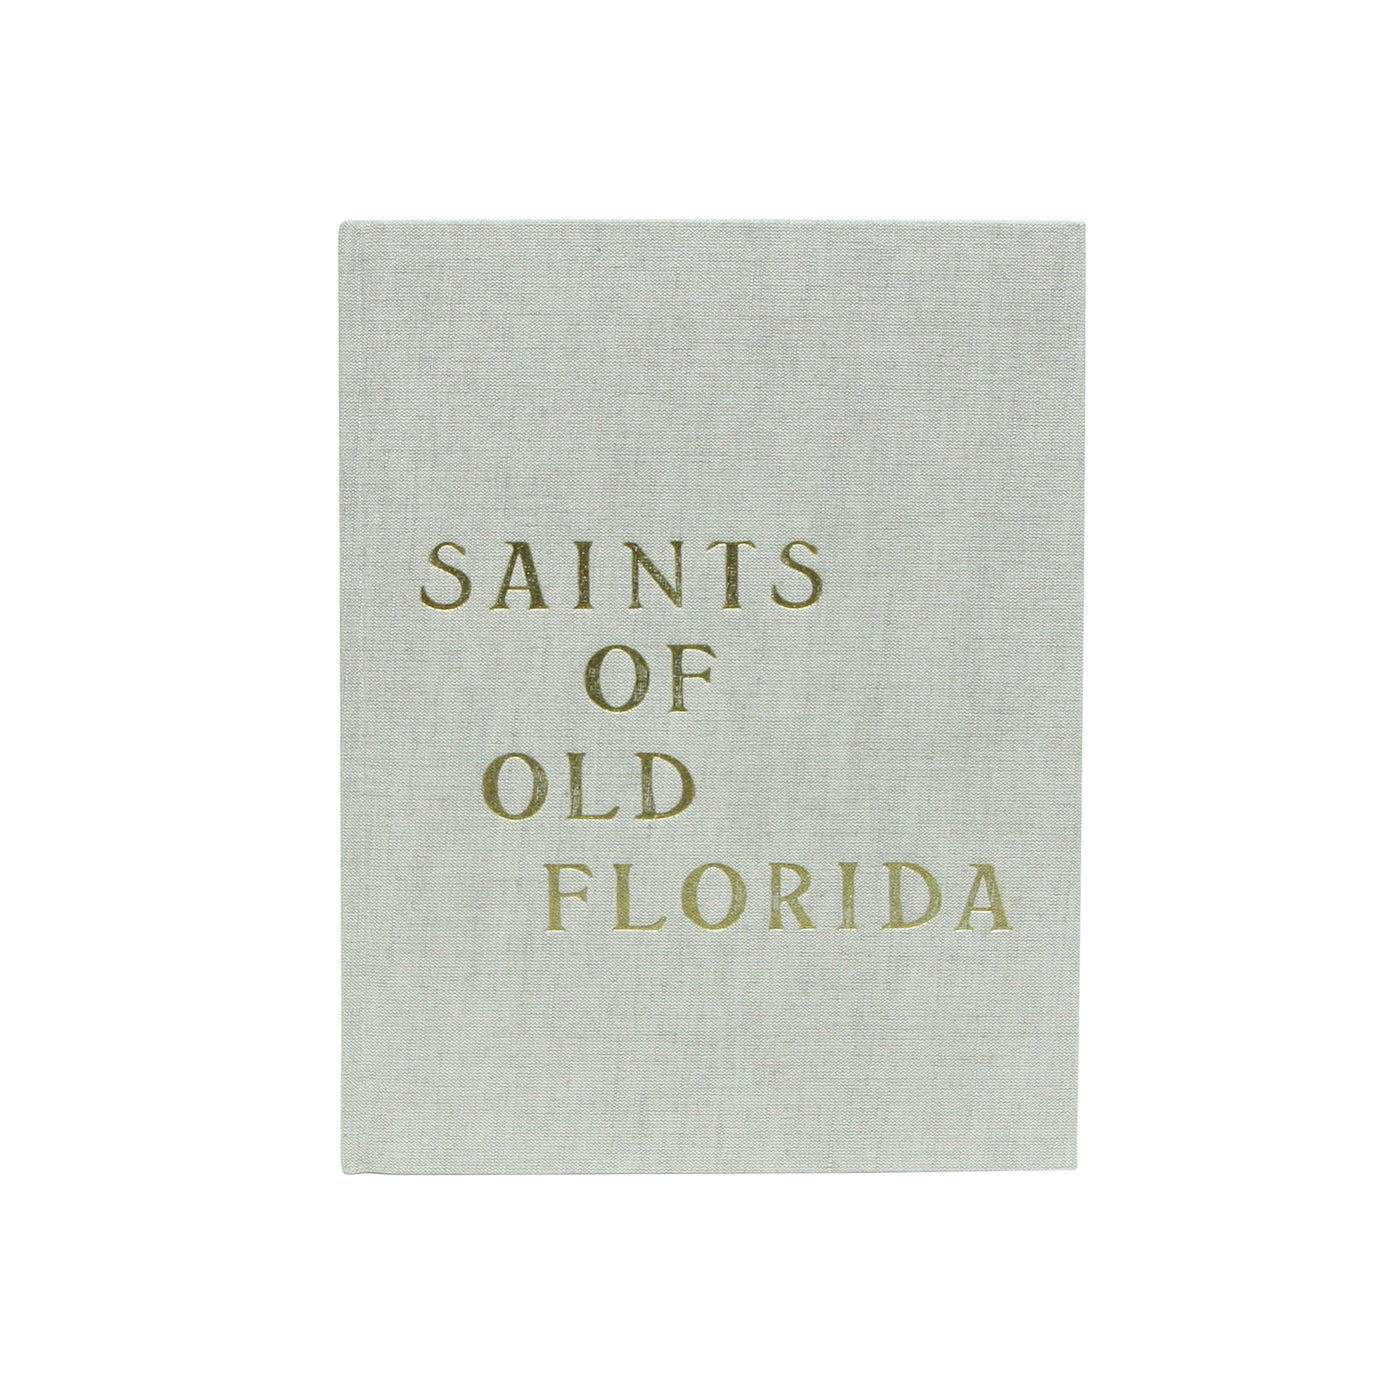 Saints of Old Florida